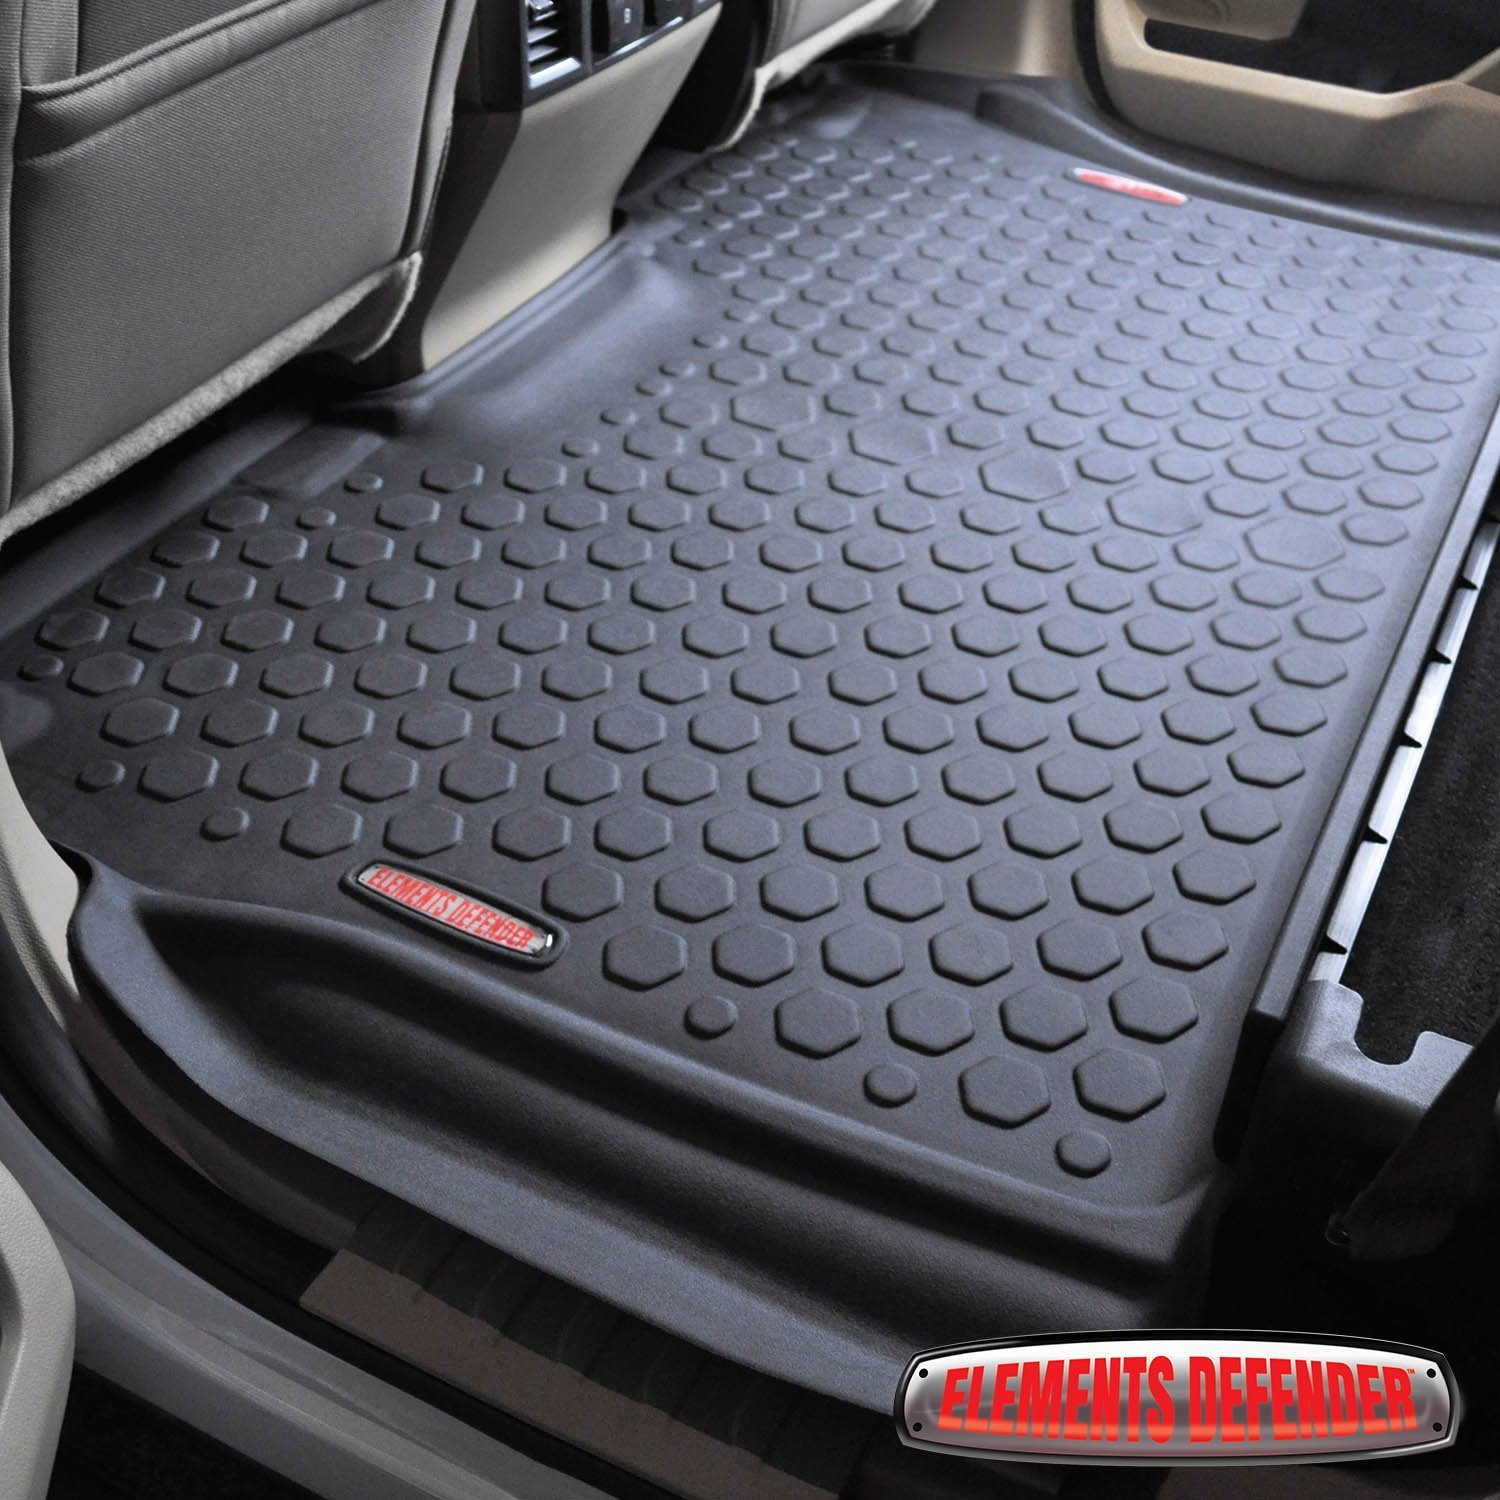 2015 - 2017 Ford F-150 Floor Mats (FRONT & REAR LINERS - 100% WEATHER RESISTANT) Fits Crew Cab F150 Trucks in 2015,2016 & 2017 Models - Guaranteed Perfect Fit - Custom Tech Fitting Technology